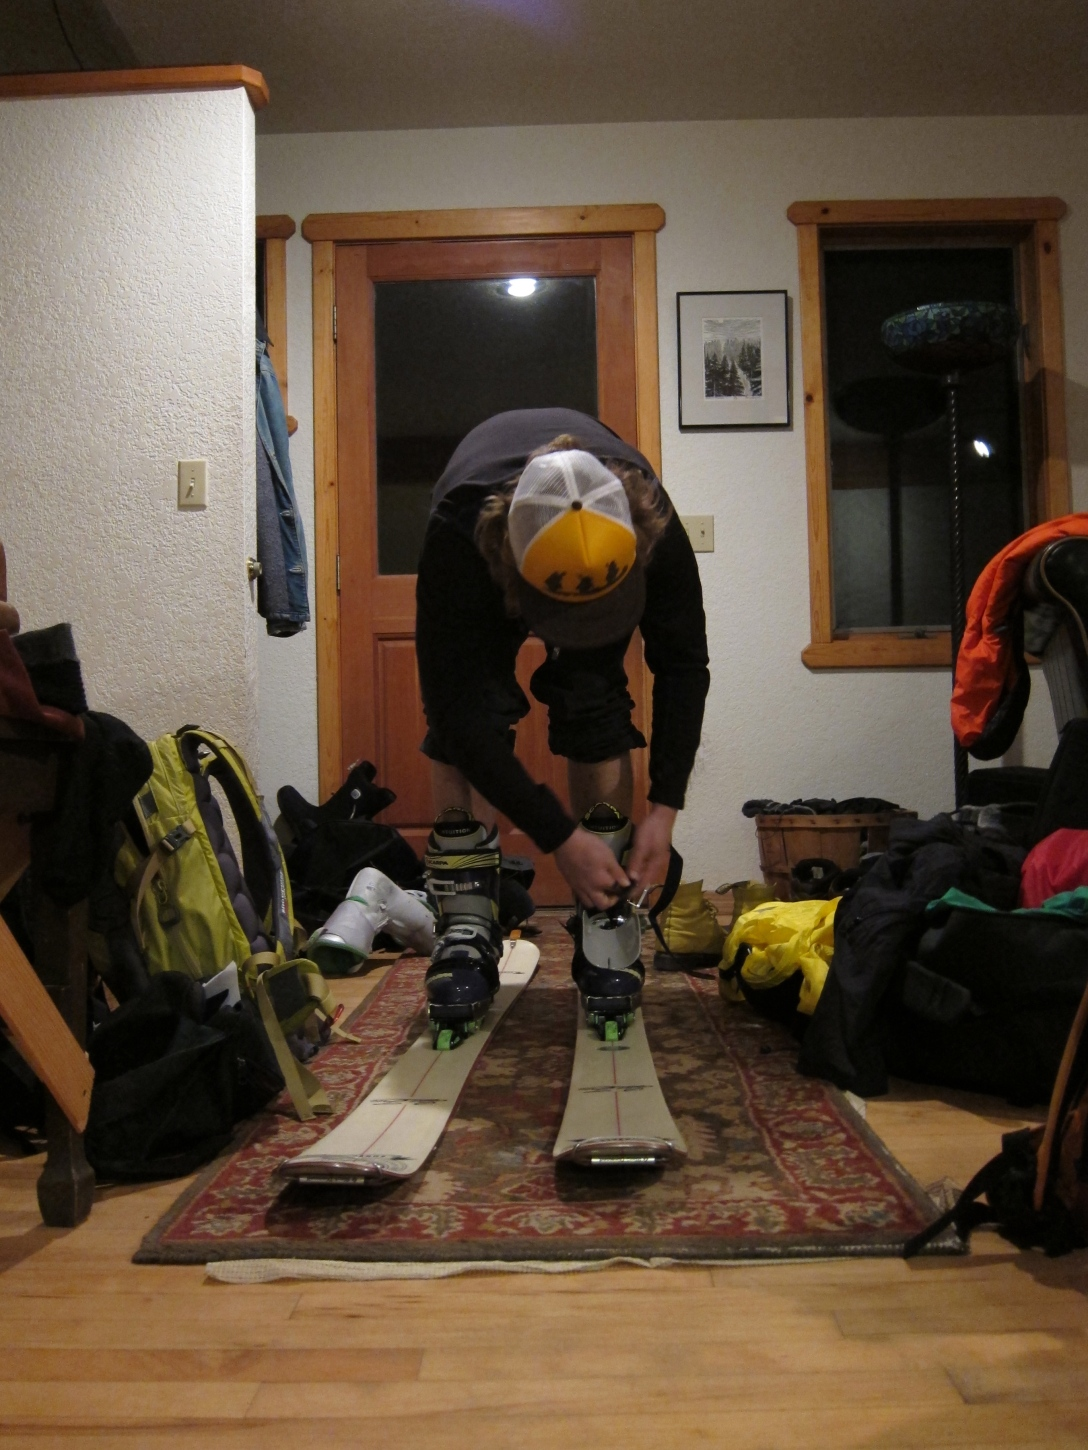 Gearing up: Martin with his new Telemark equipment. Not at all eager to get out and try them.